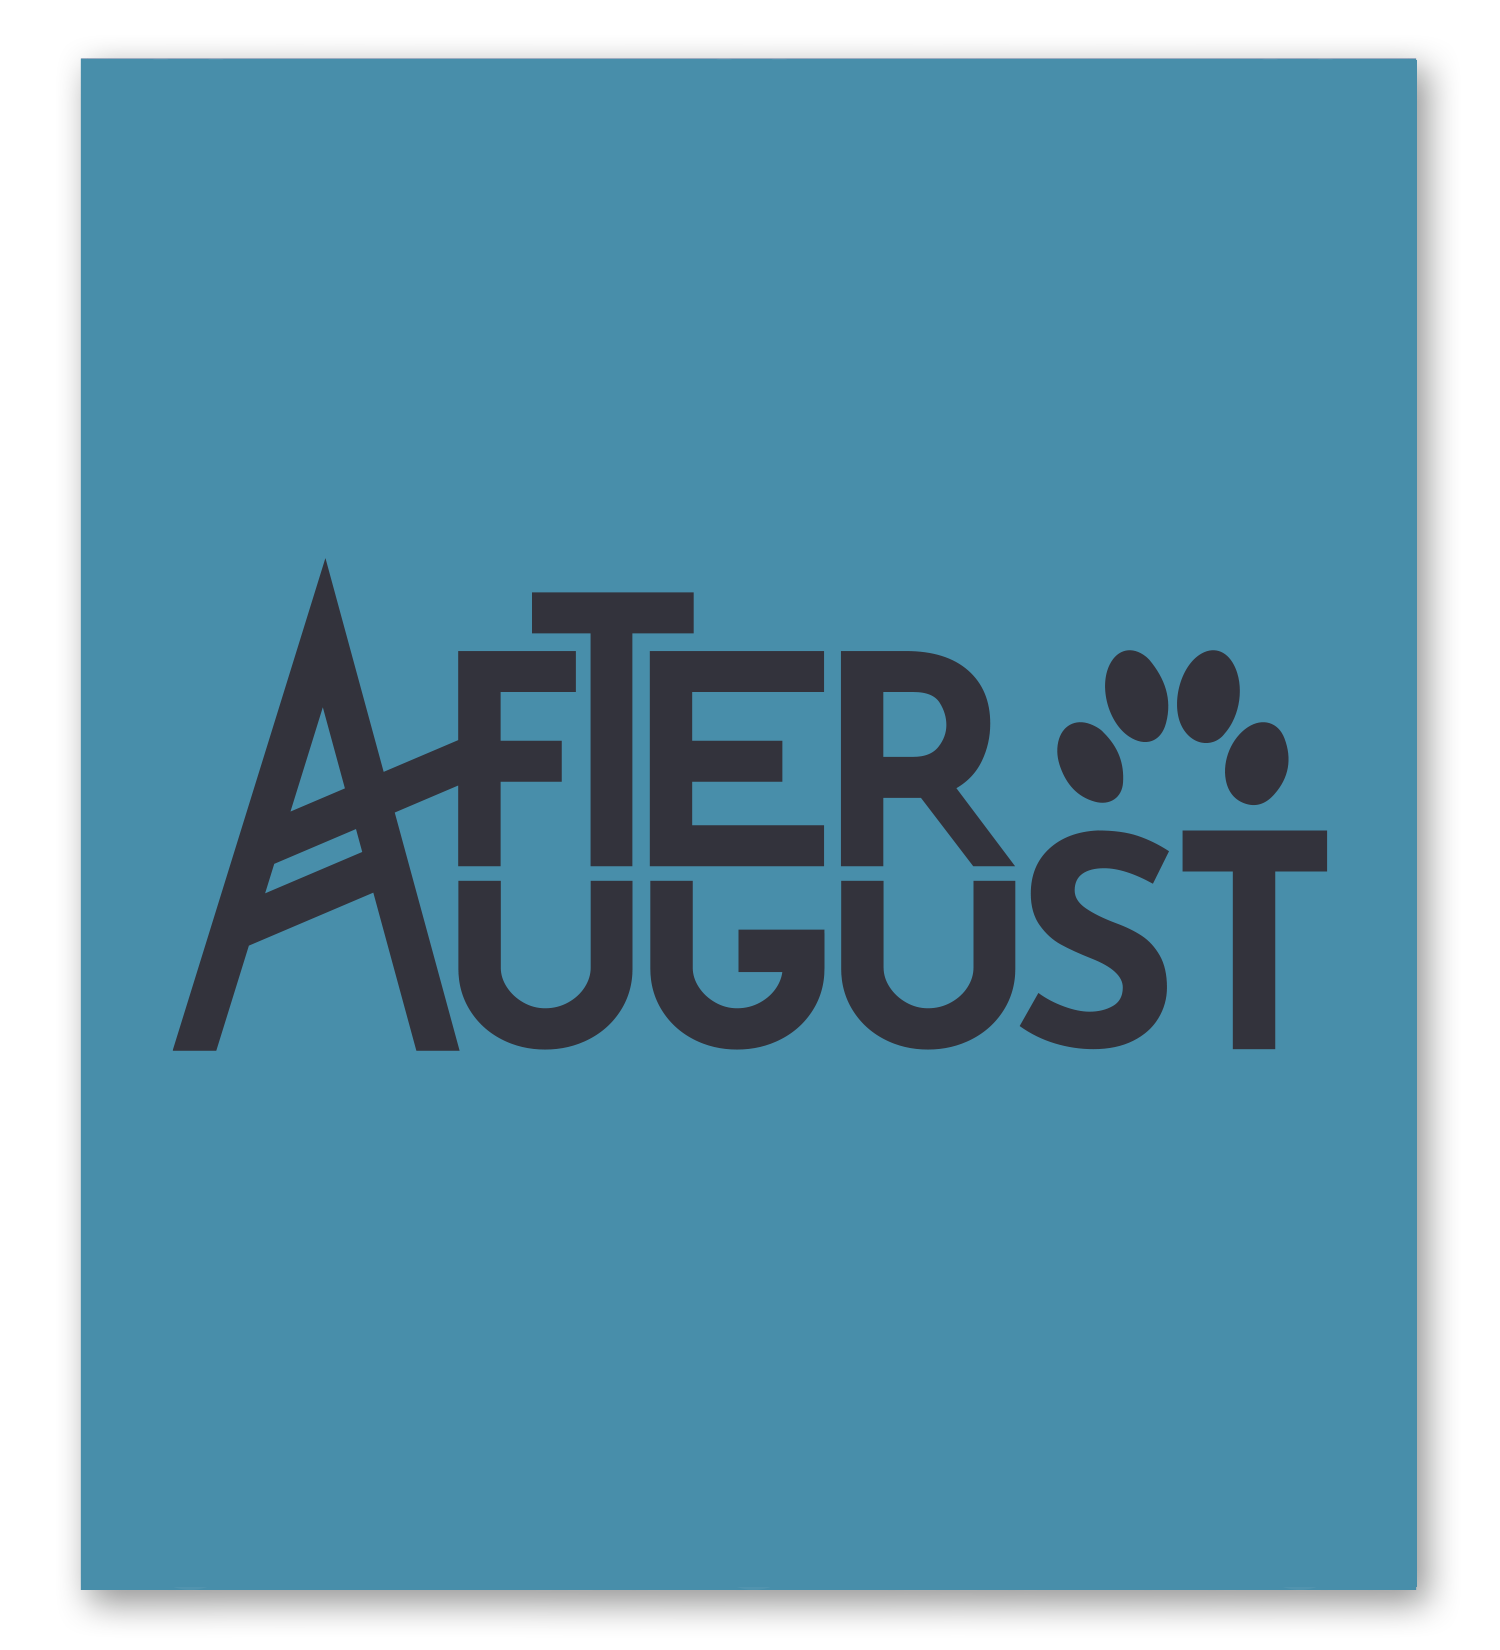 afteraugust-port-new-img copy